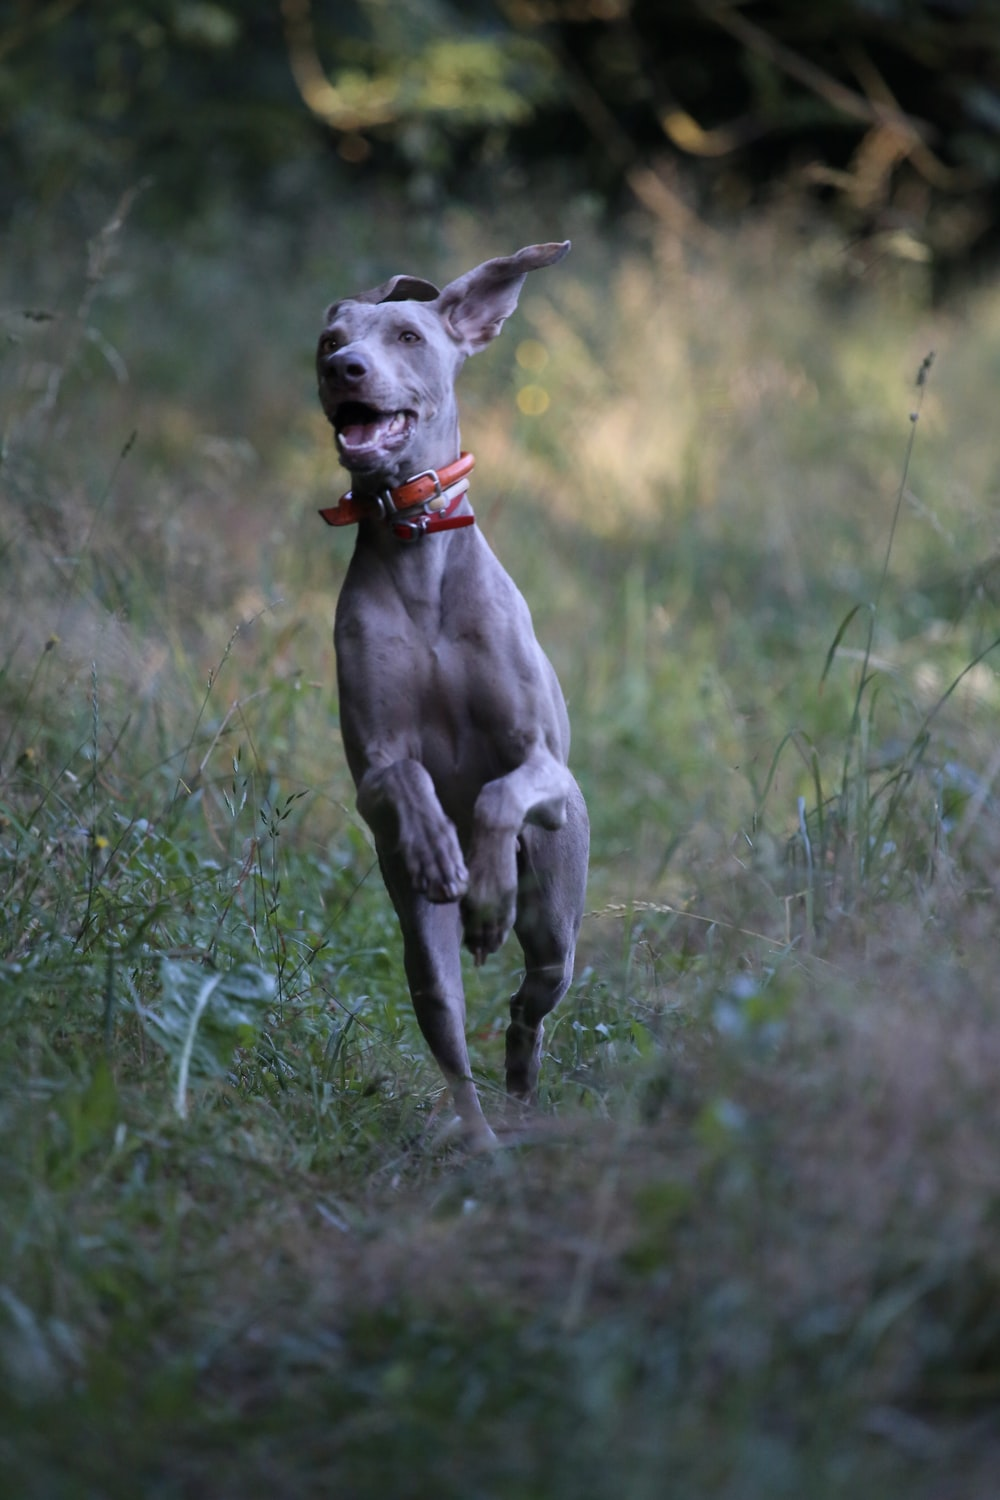 gray dog with red collar running on green grass